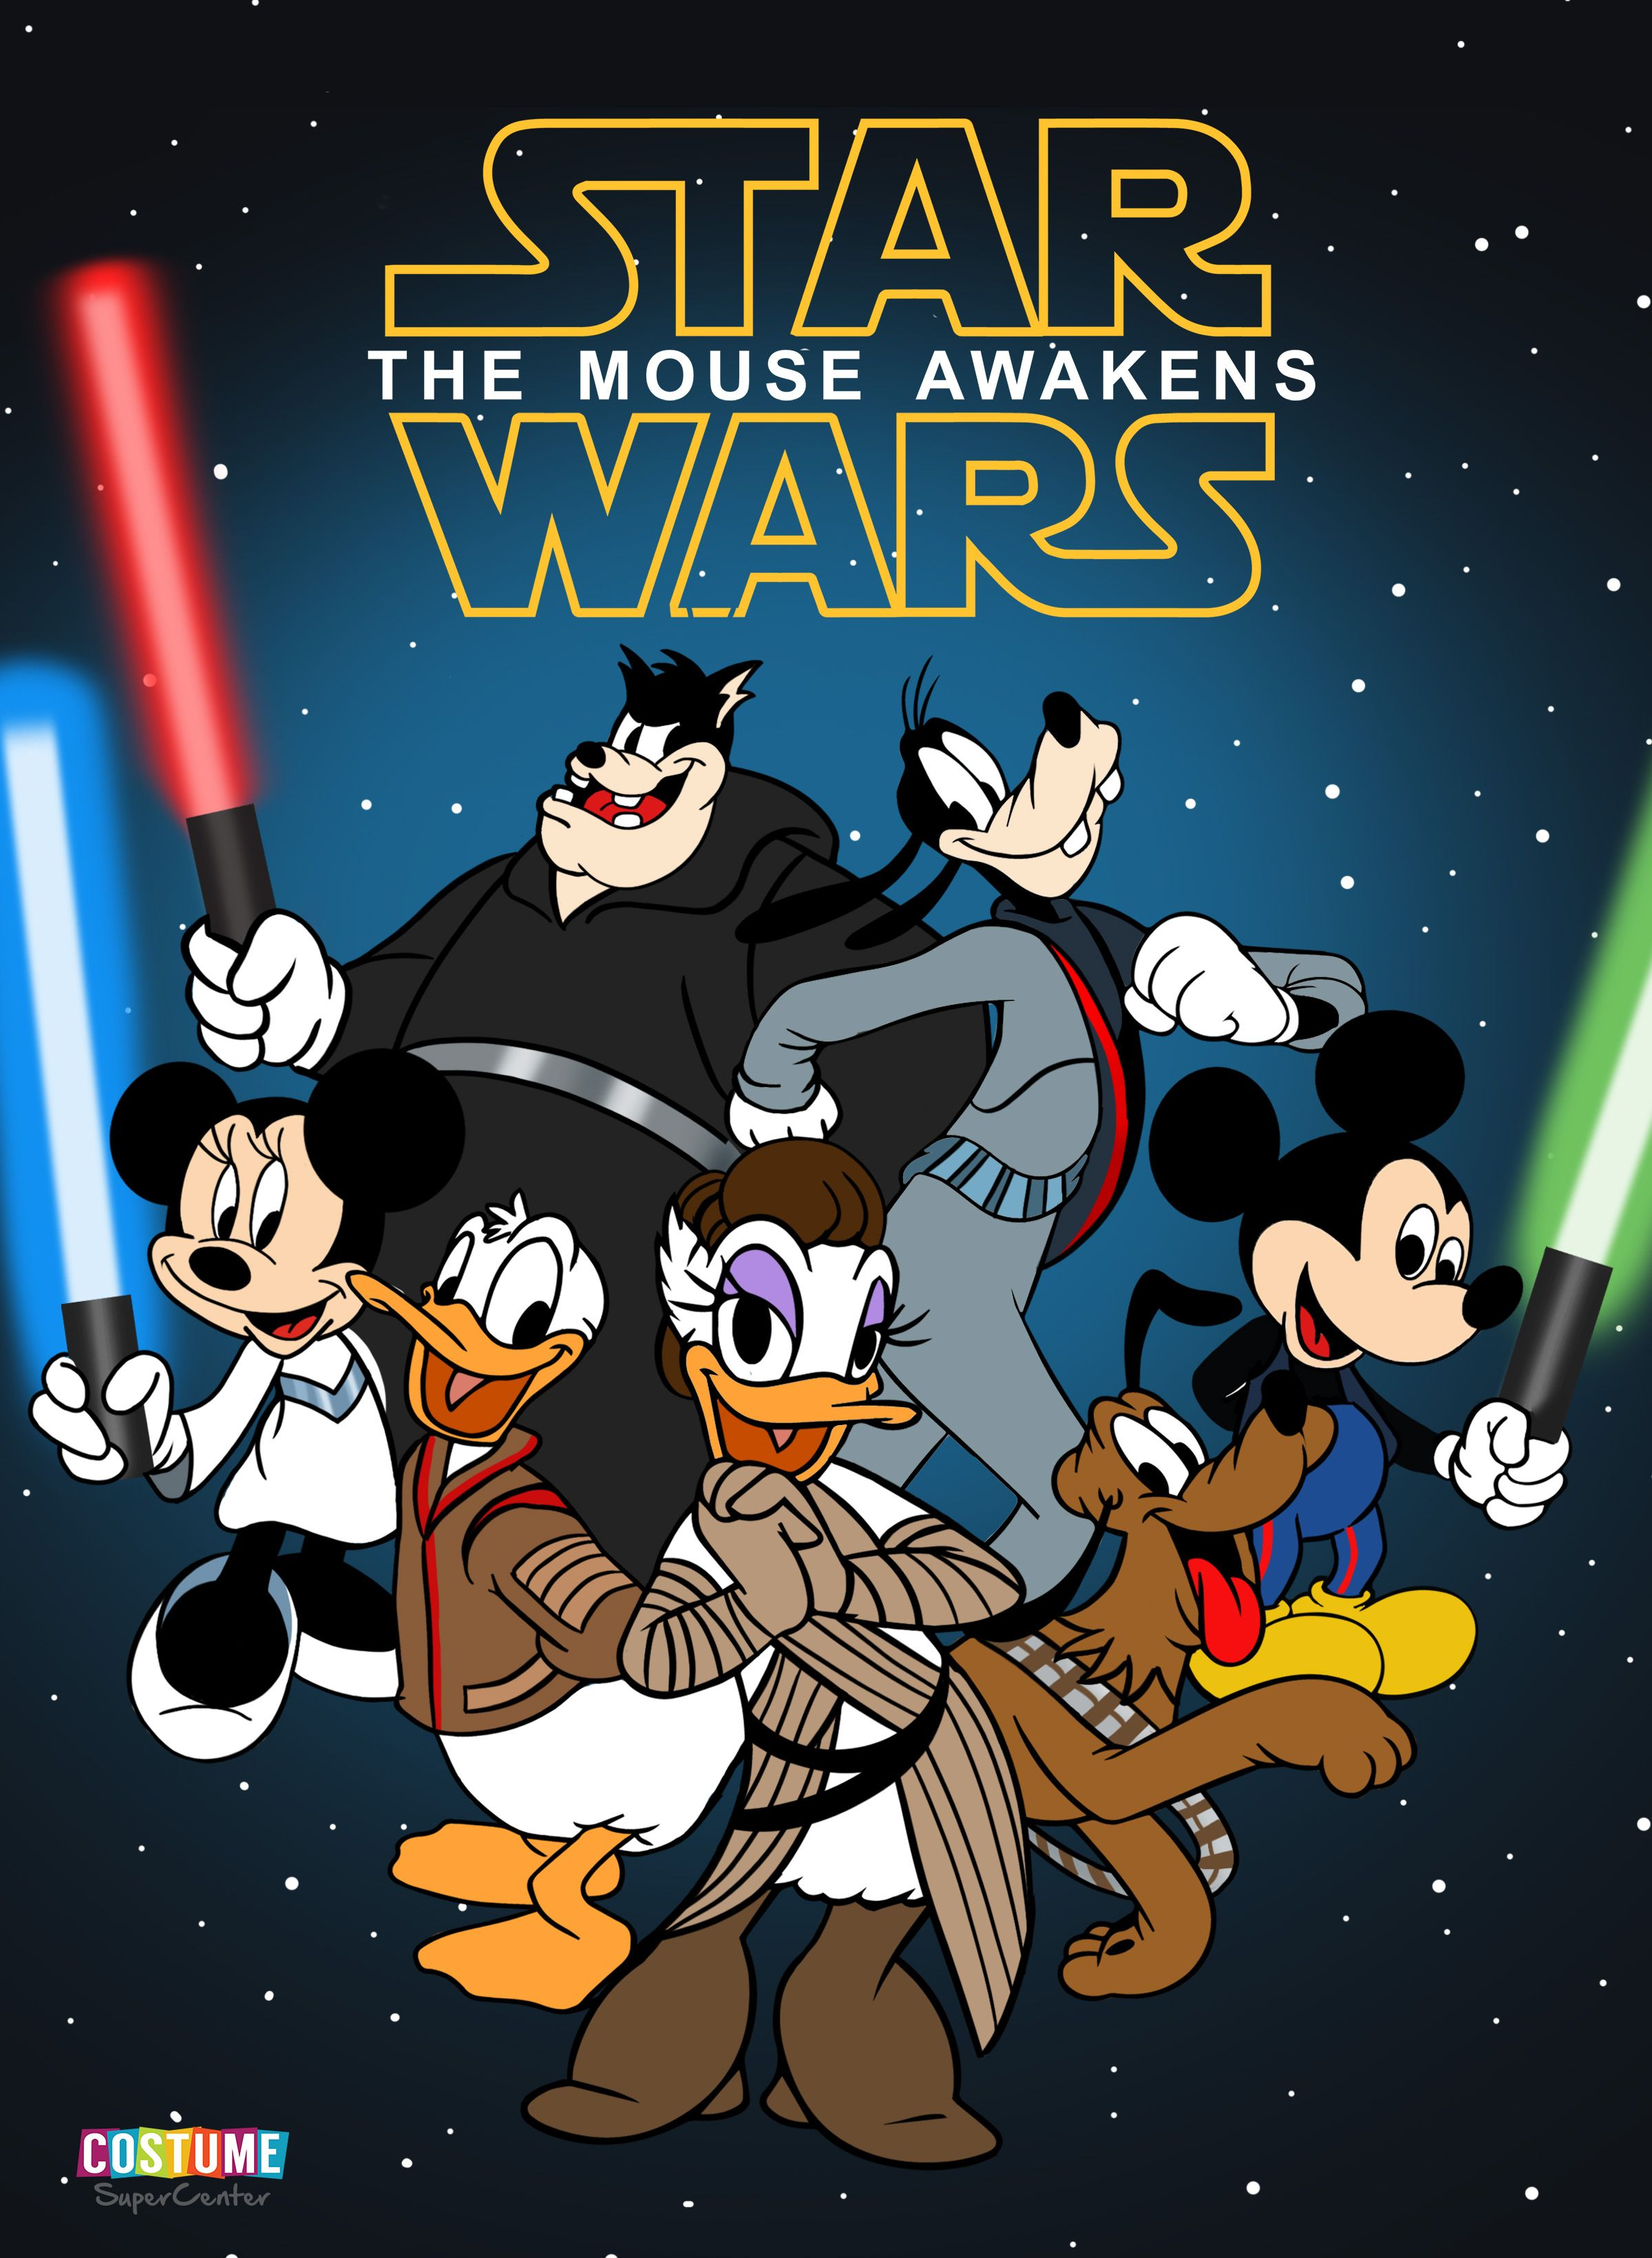 Exclusive Mickey Mouse Set To Make Star Wars Debut Mickey Star Wars Disney Star Wars Star Wars Memes